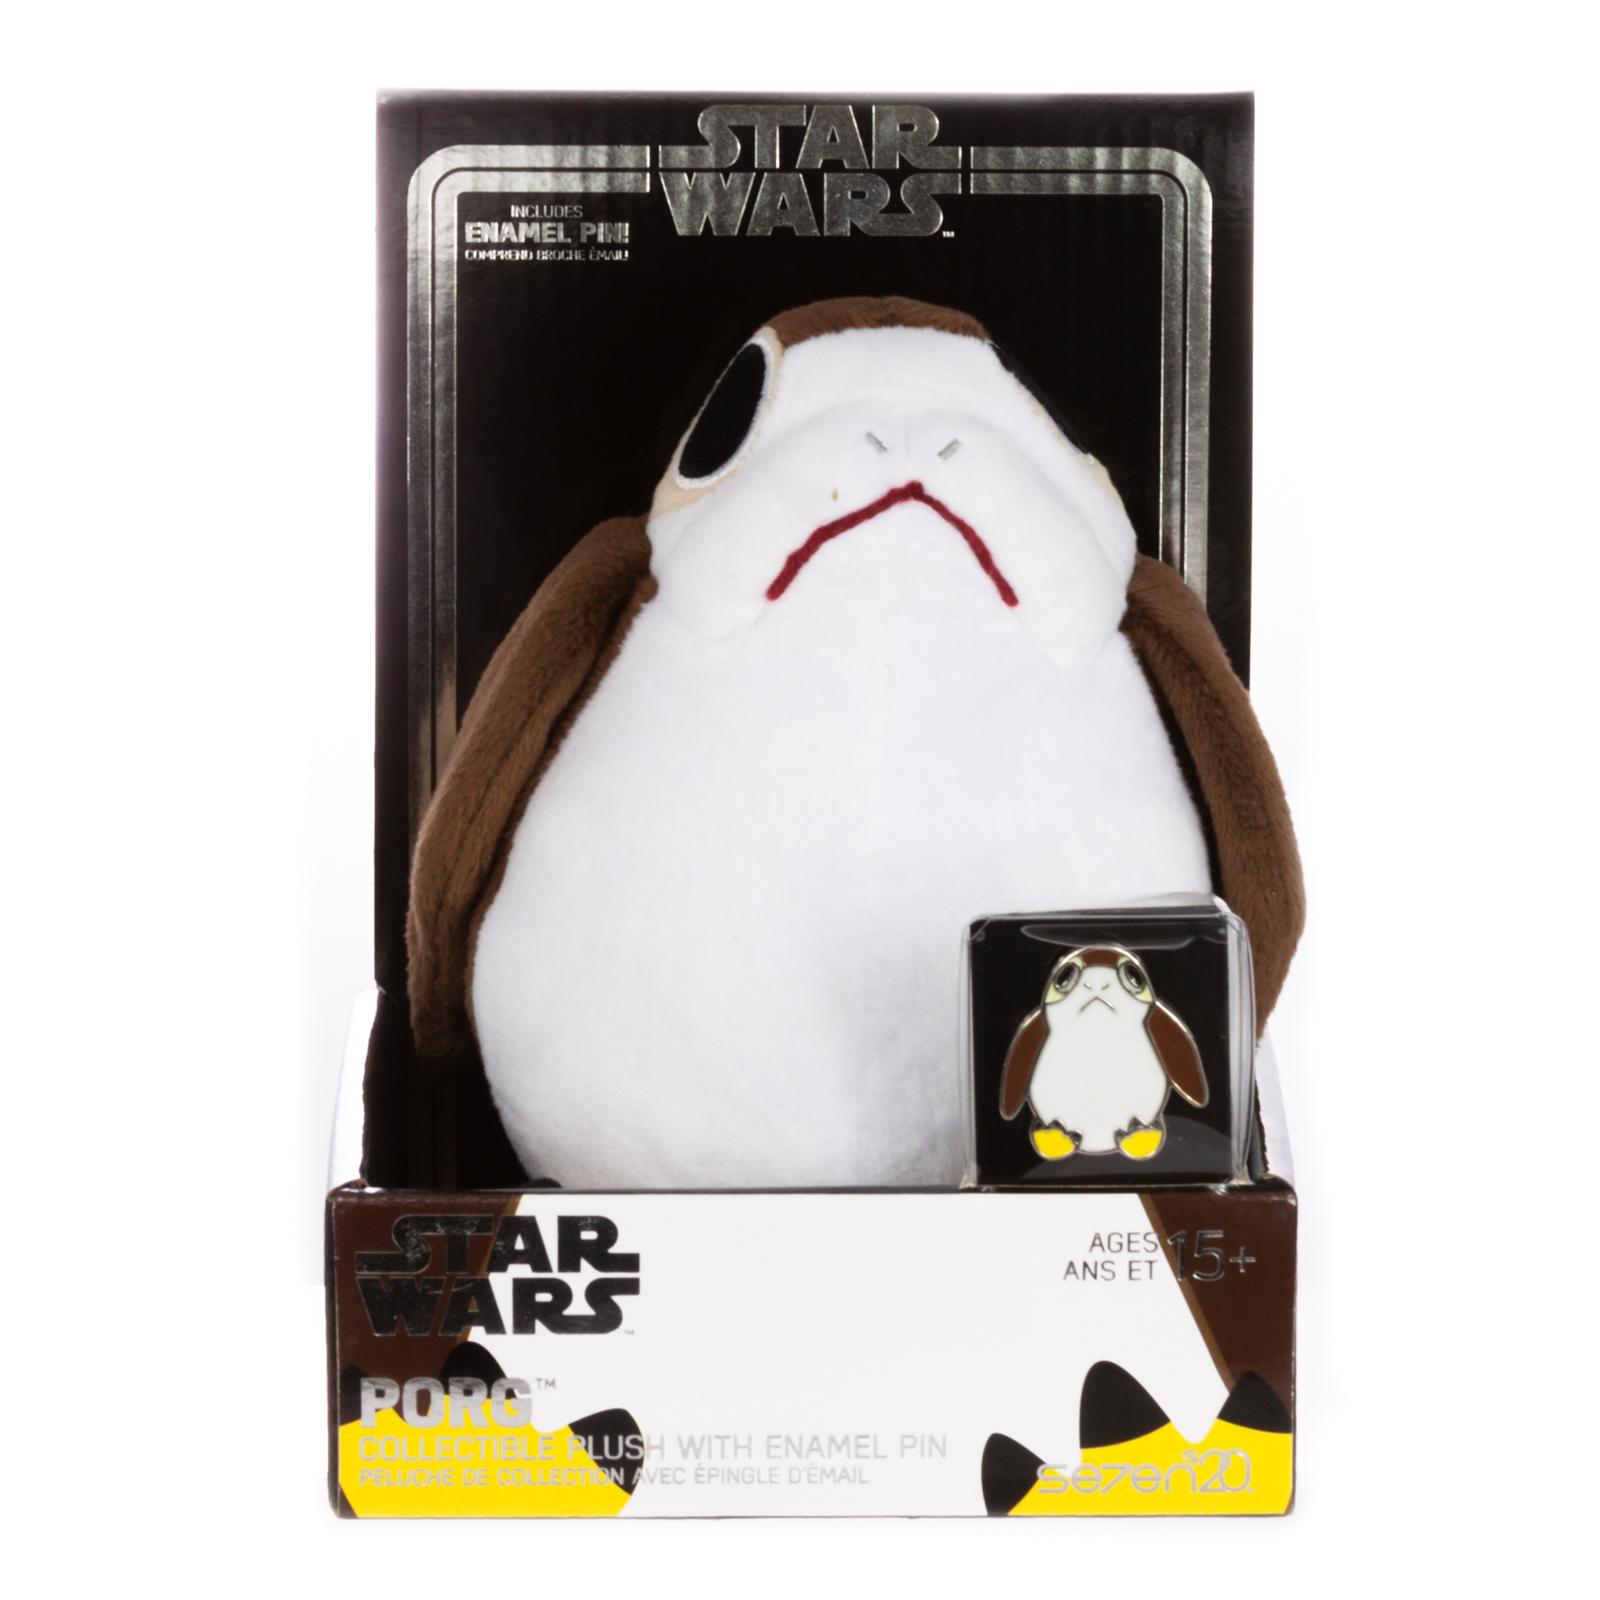 TROS Porg Plush Toy & Pin Set 1